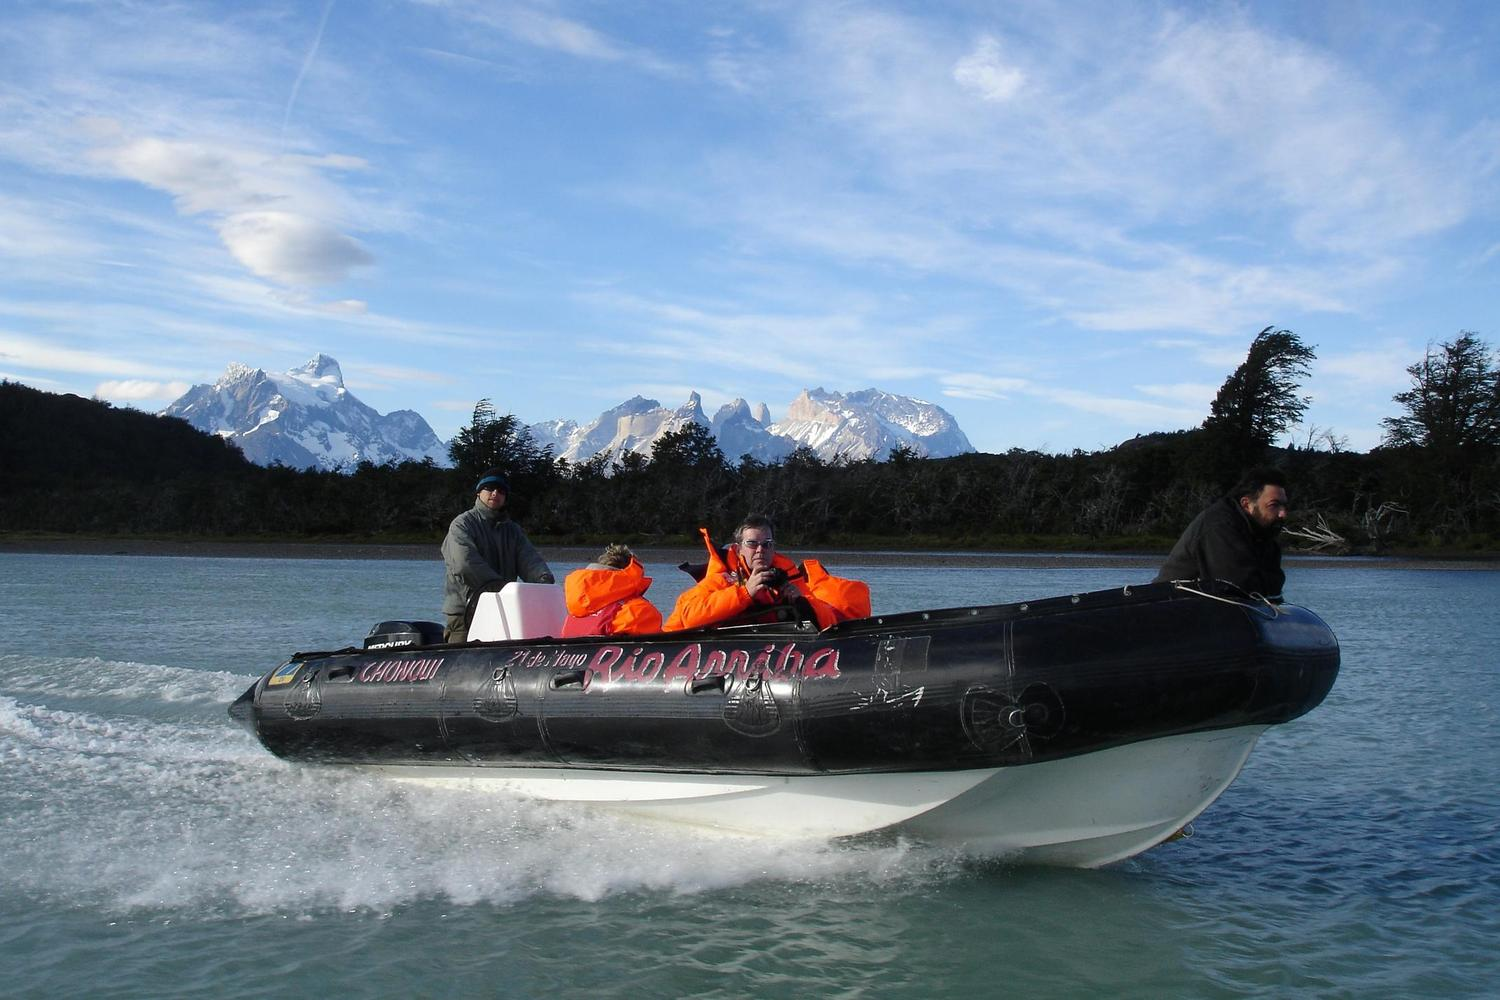 The zodiac ride along the Serrano River into Torres del Paine, Chile